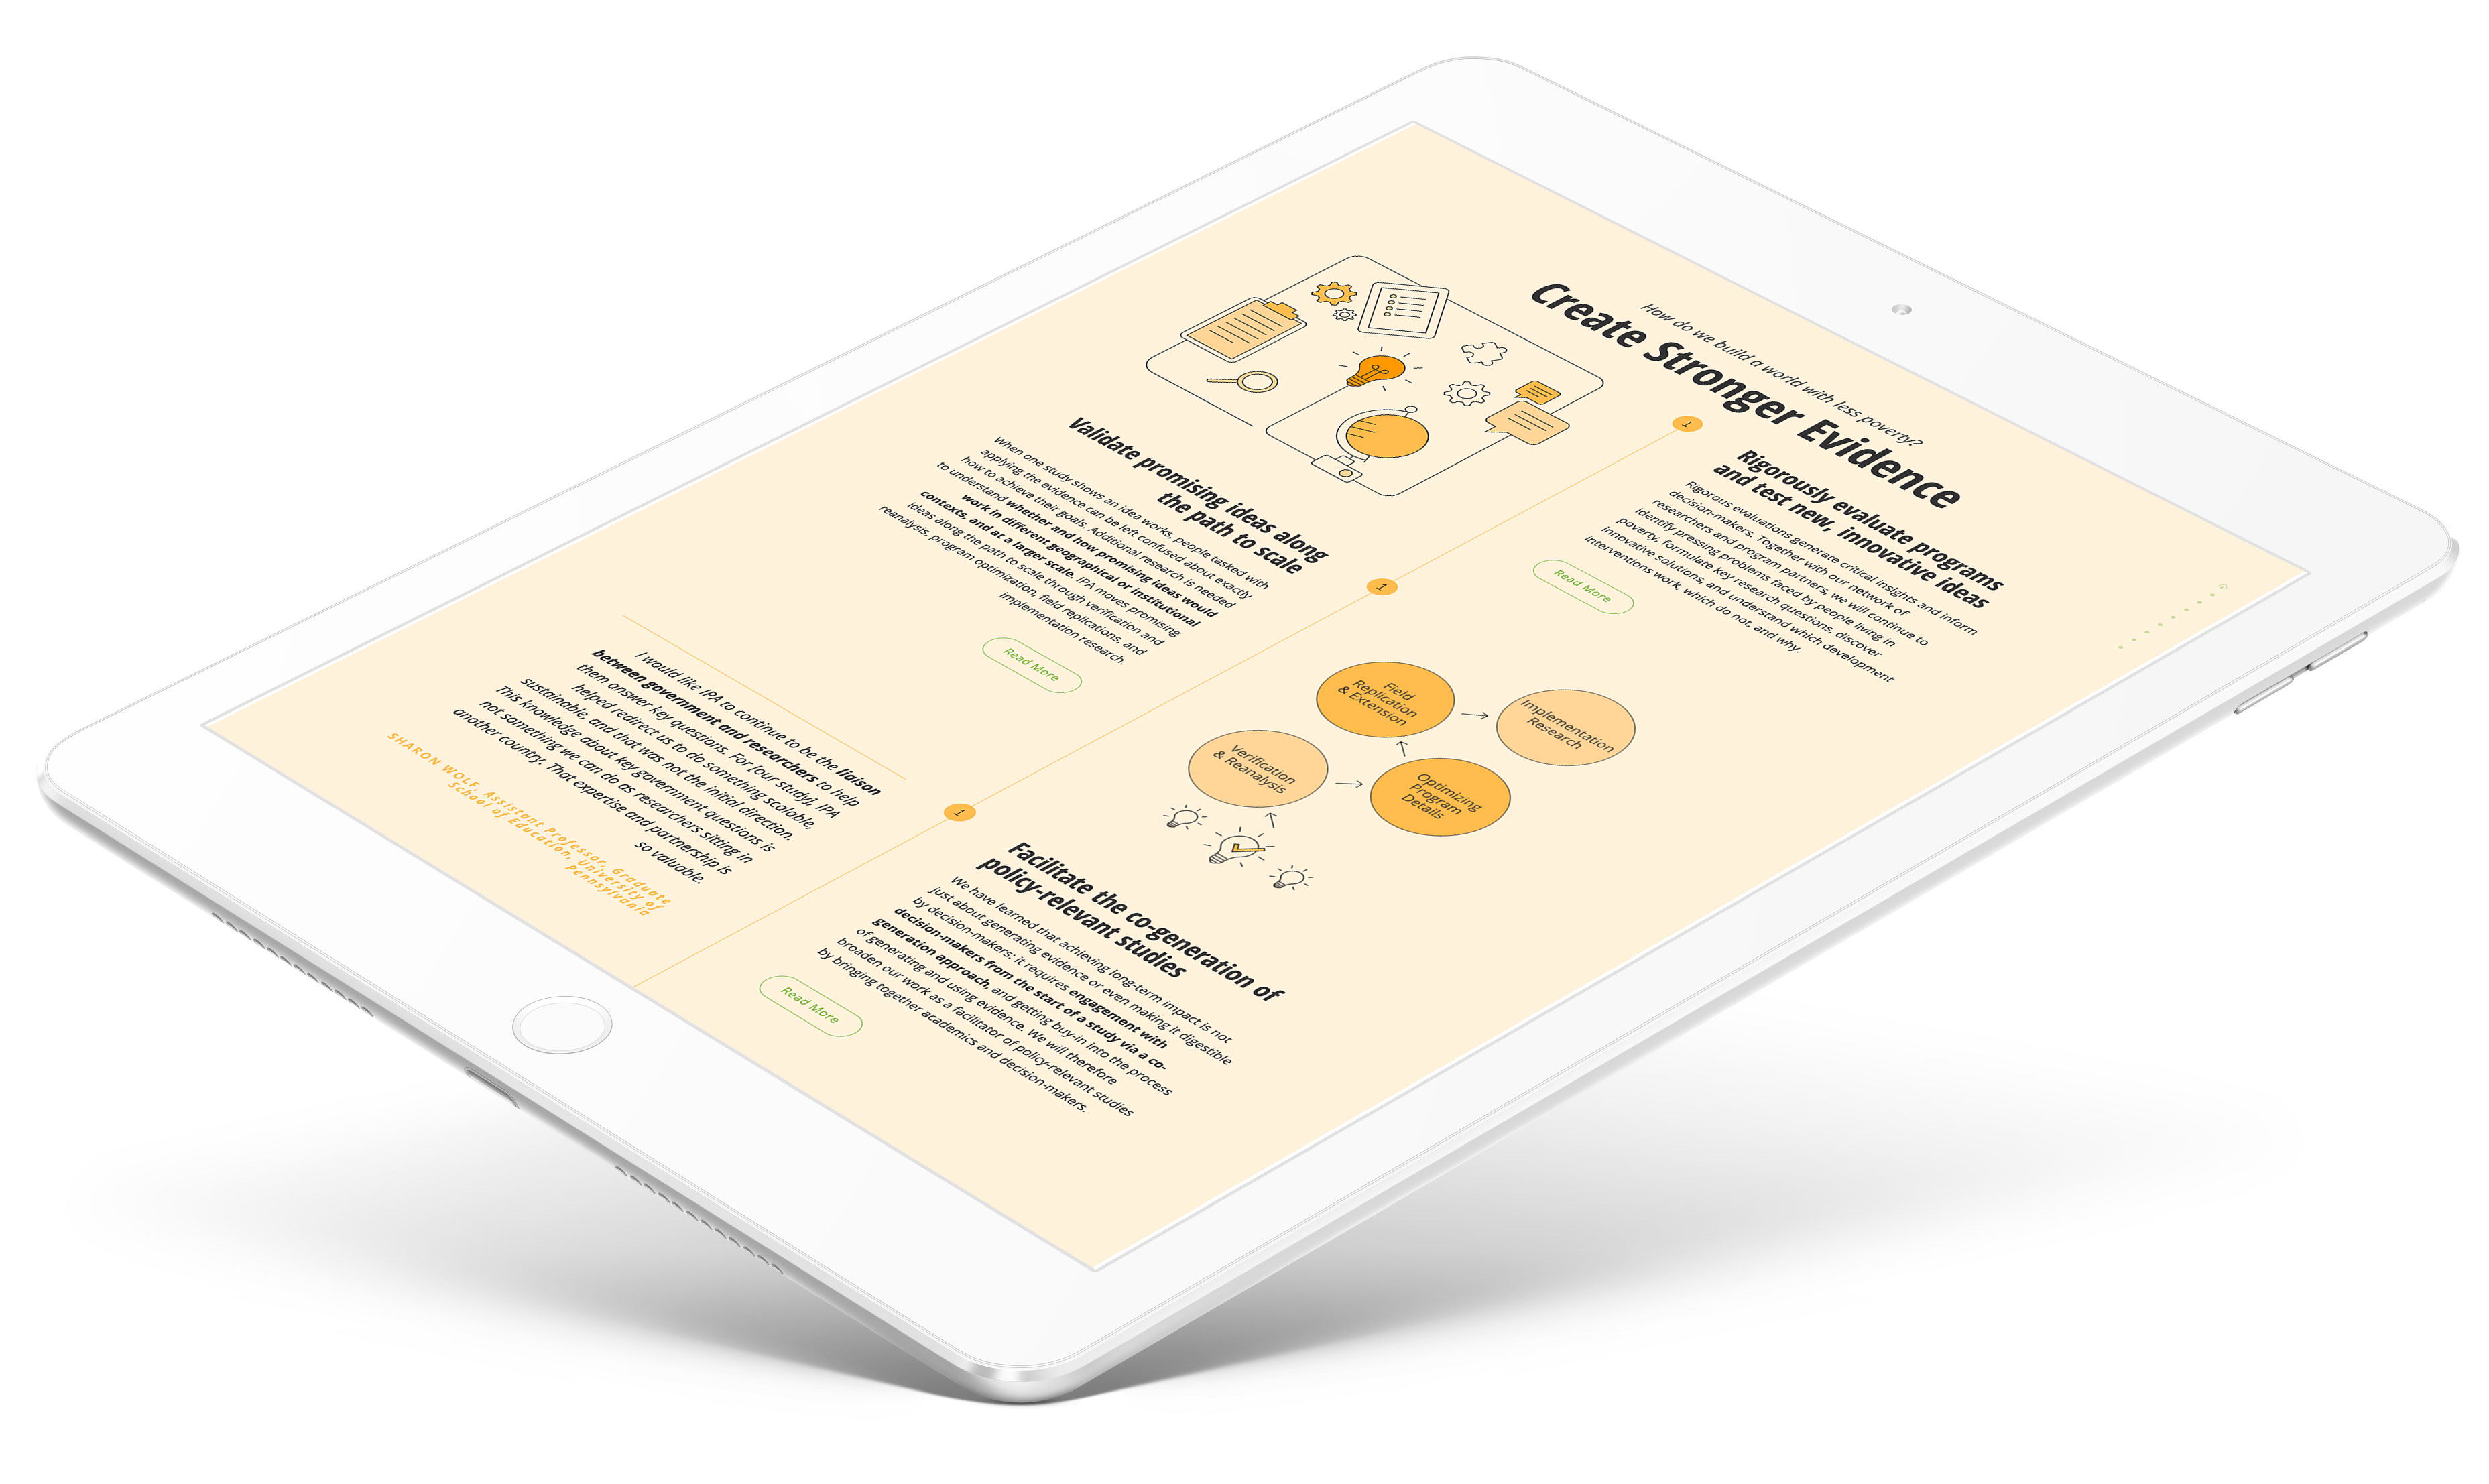 IPA Website Design Infographic on Tablet